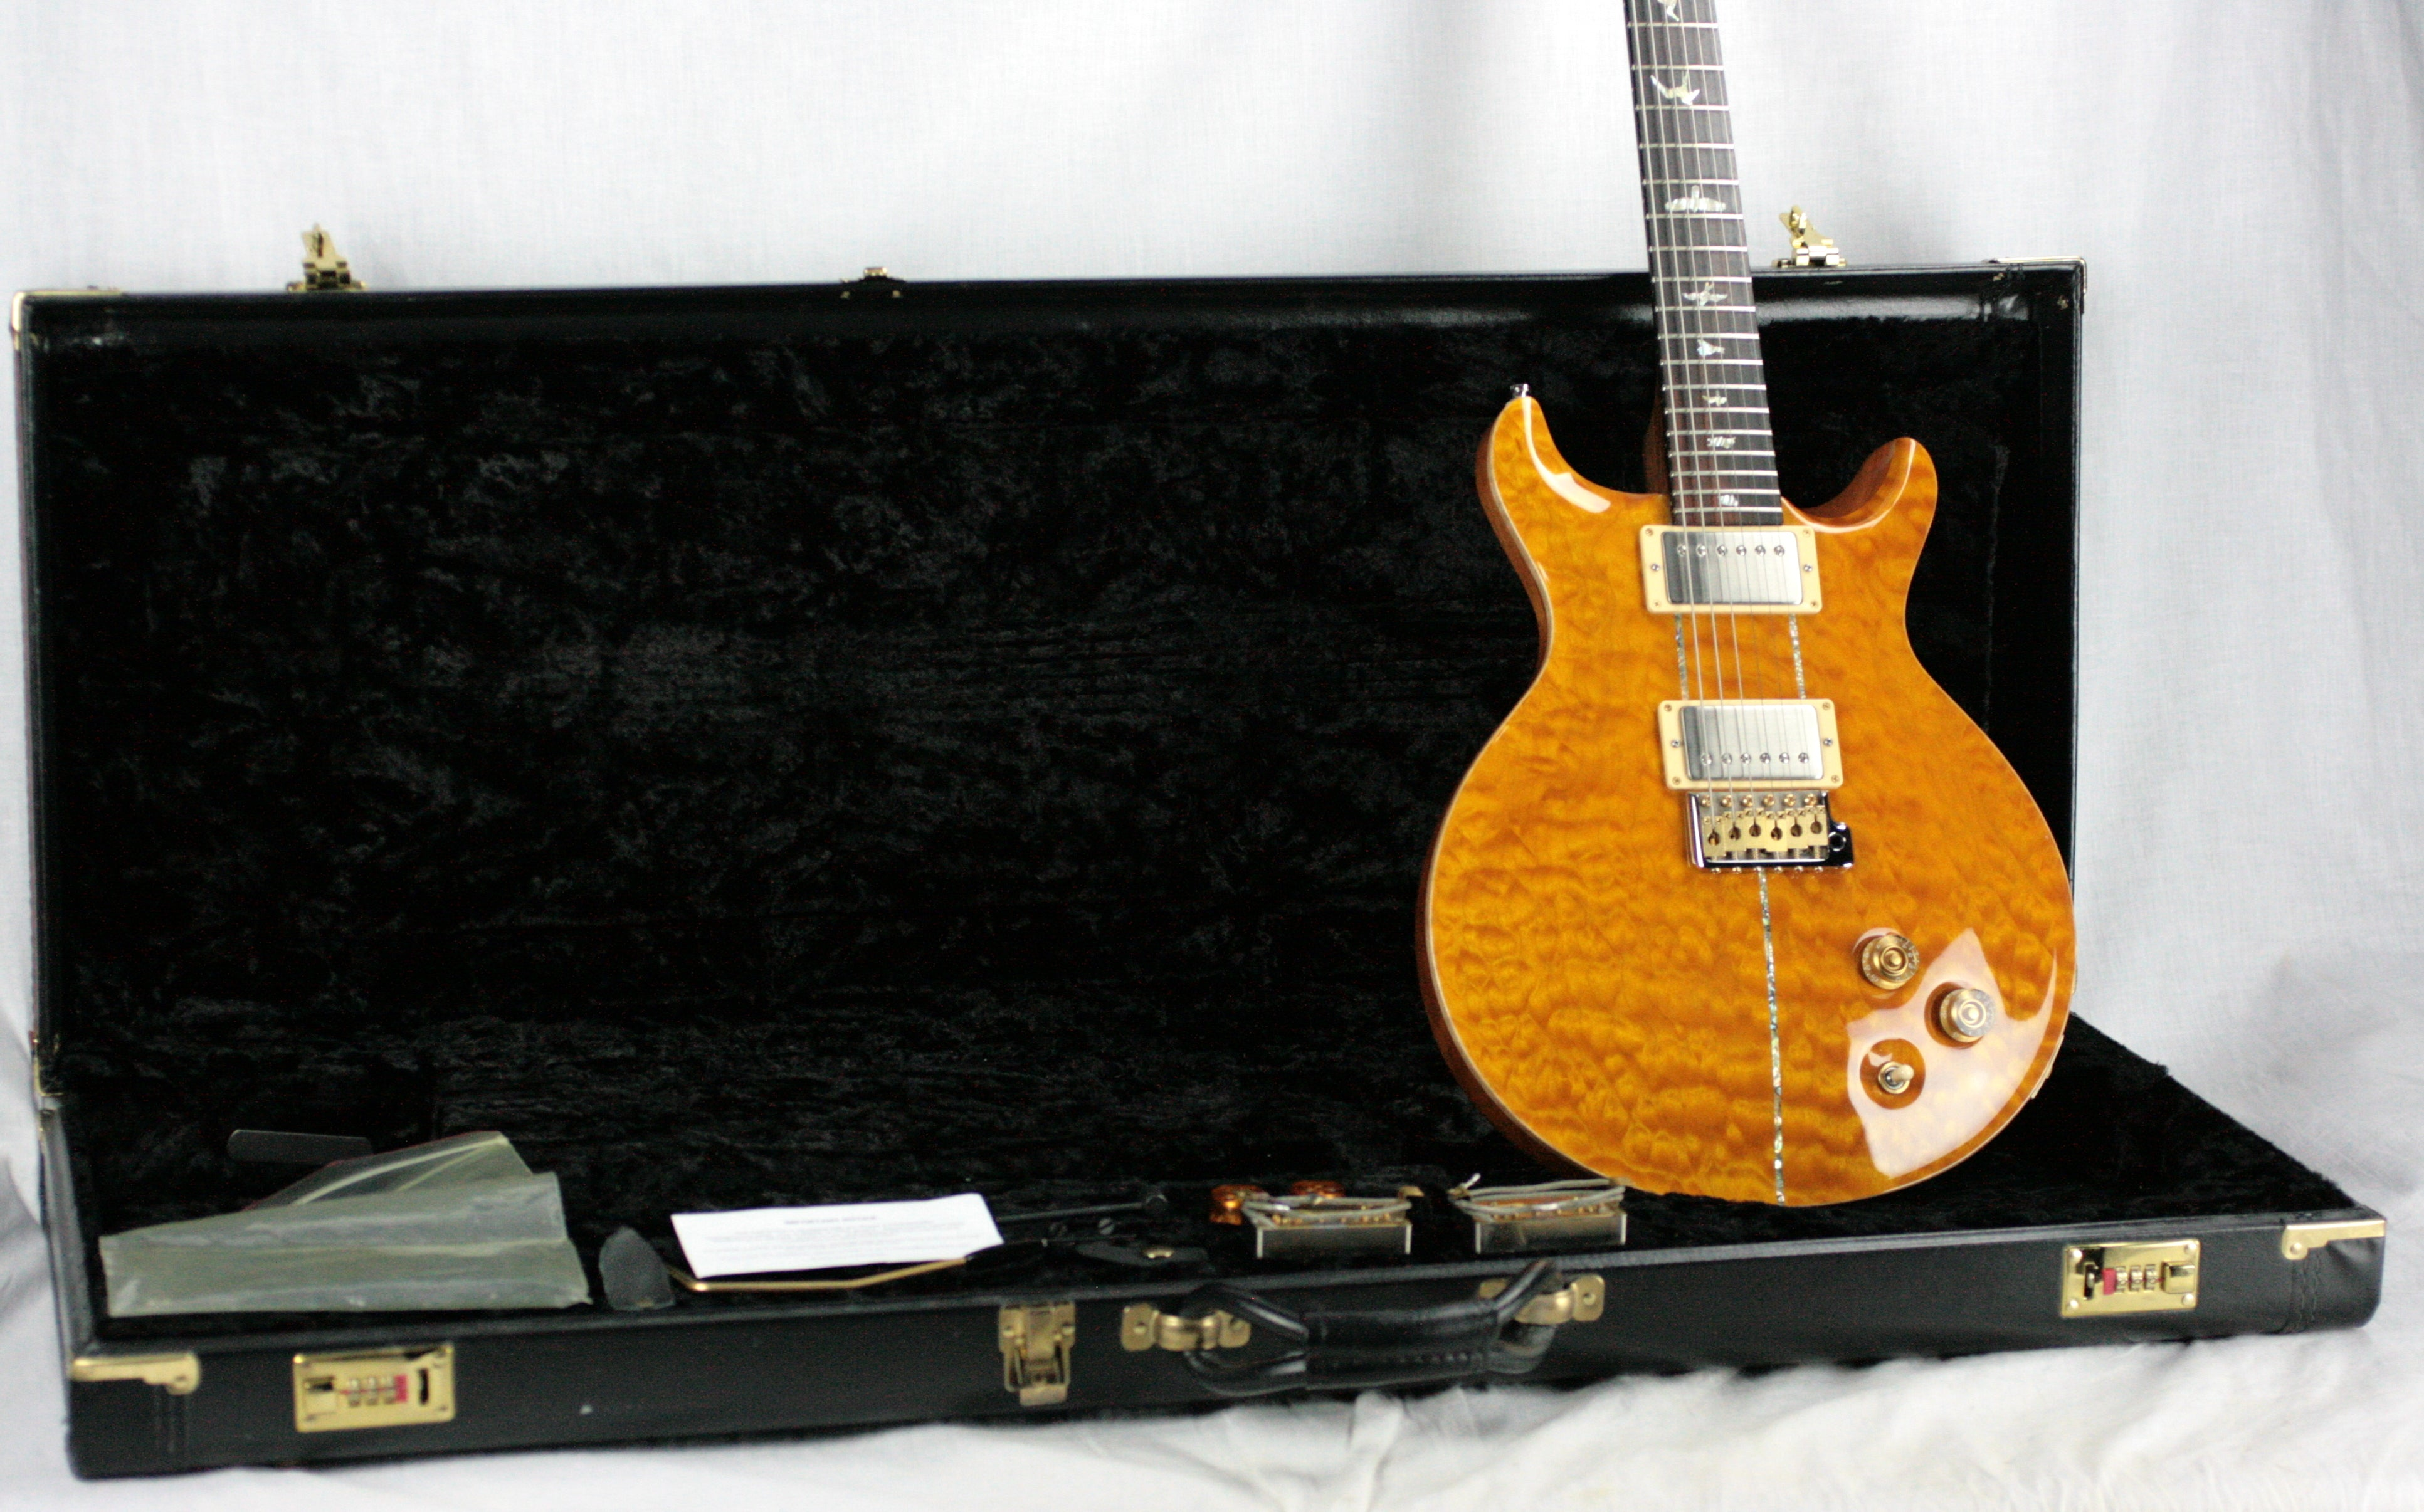 2004 PRS Solid BRAZILIAN ROSEWOOD Neck Santana Limited Edition 1/200! Paul Reed Smith Yellow Quilt